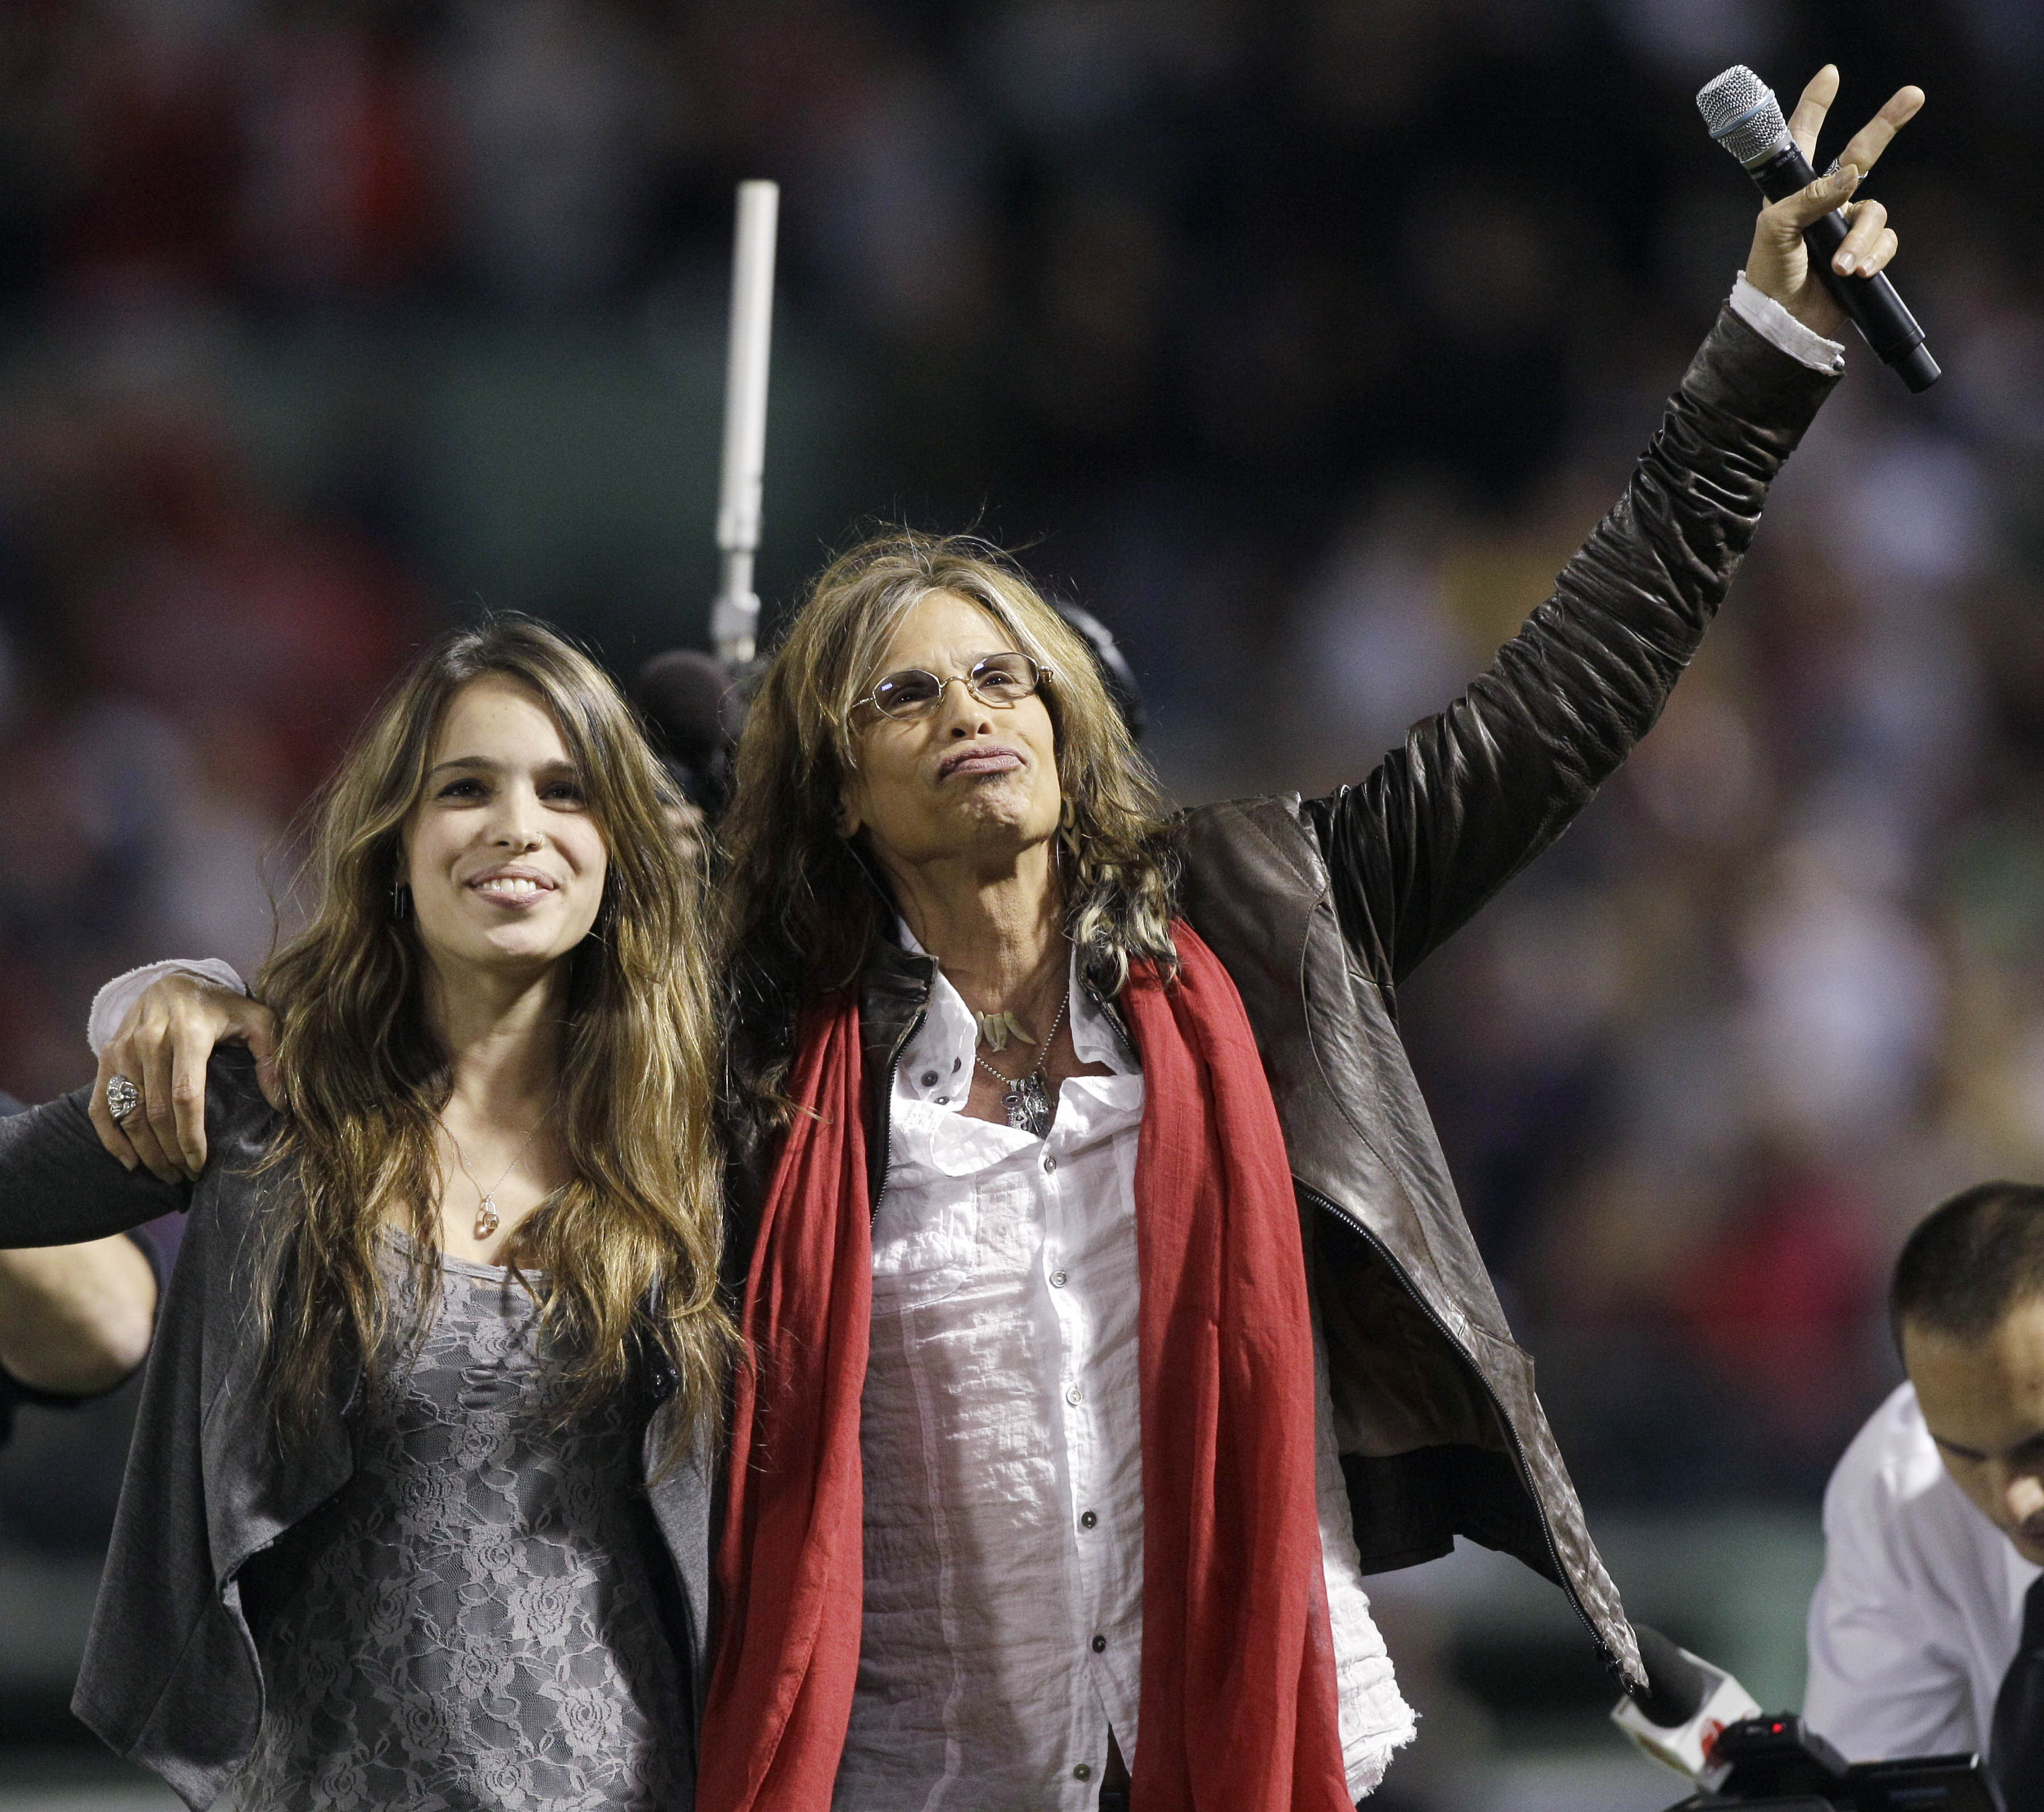 4. Aerosmith's Steven Tyler, with daughter Chelsea, left, waves after singing 'God Bless America' during the seventh-inning stretch of the opening gam...